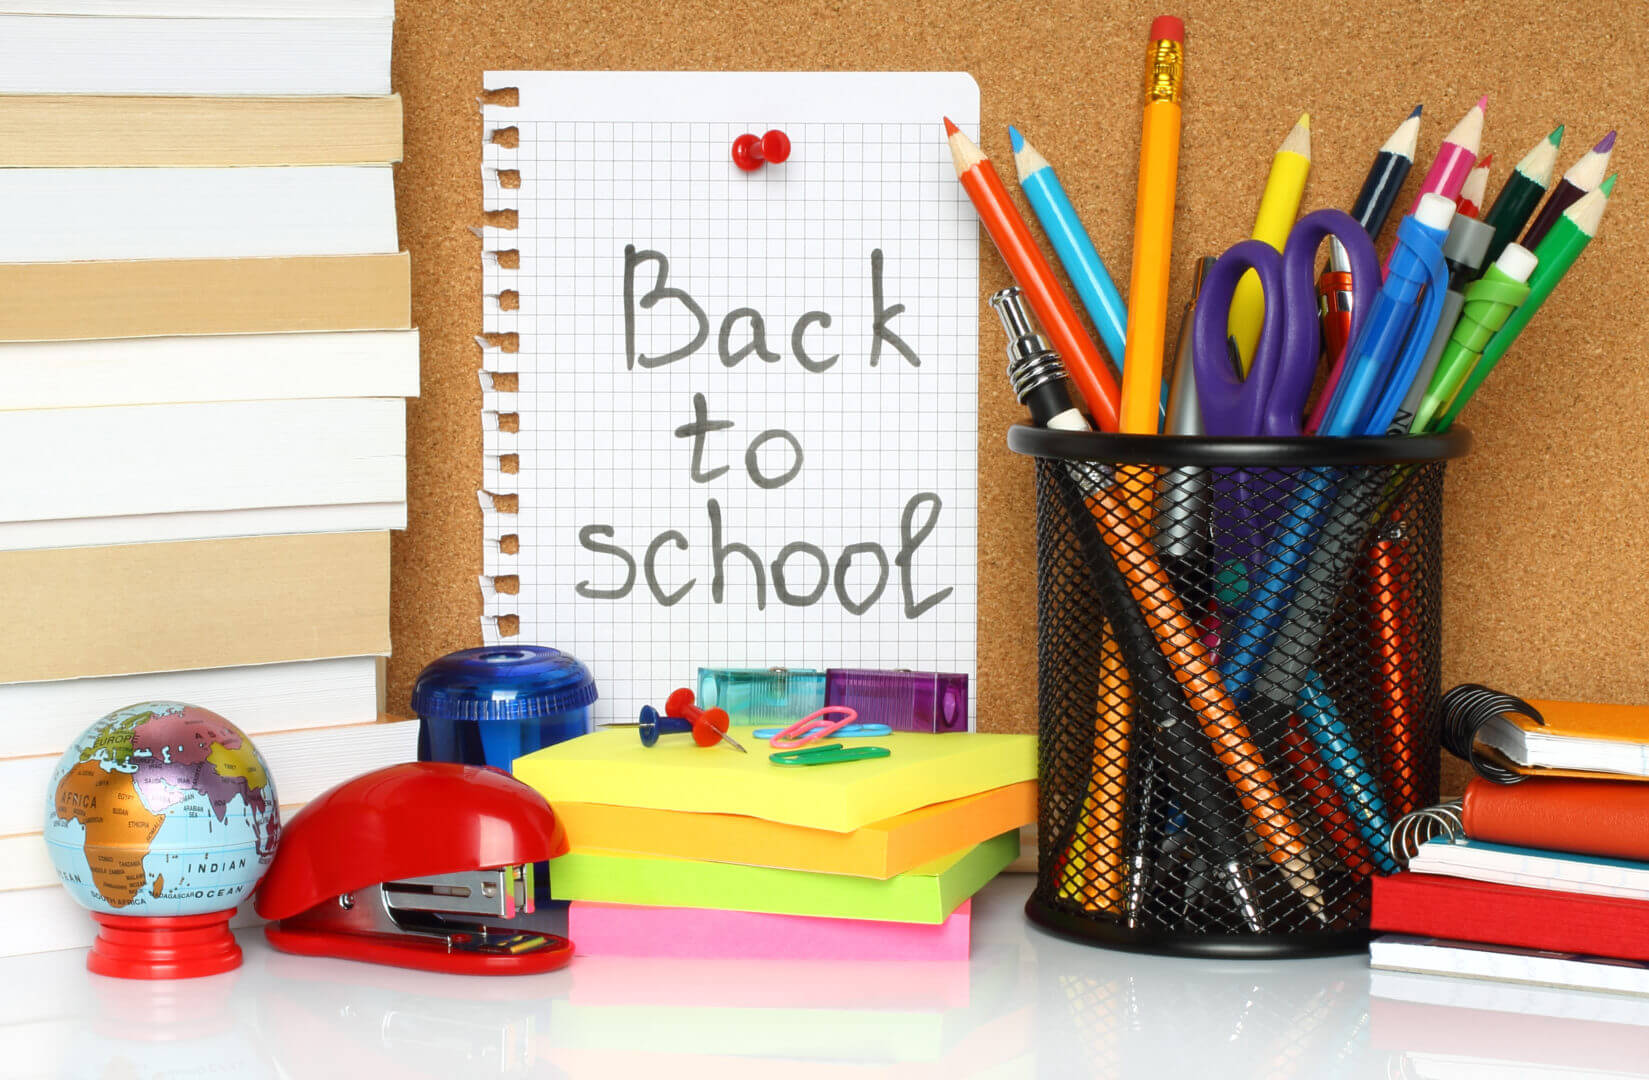 Don't be tardy! Back-to-school searching starts in July -- plan campaigns now